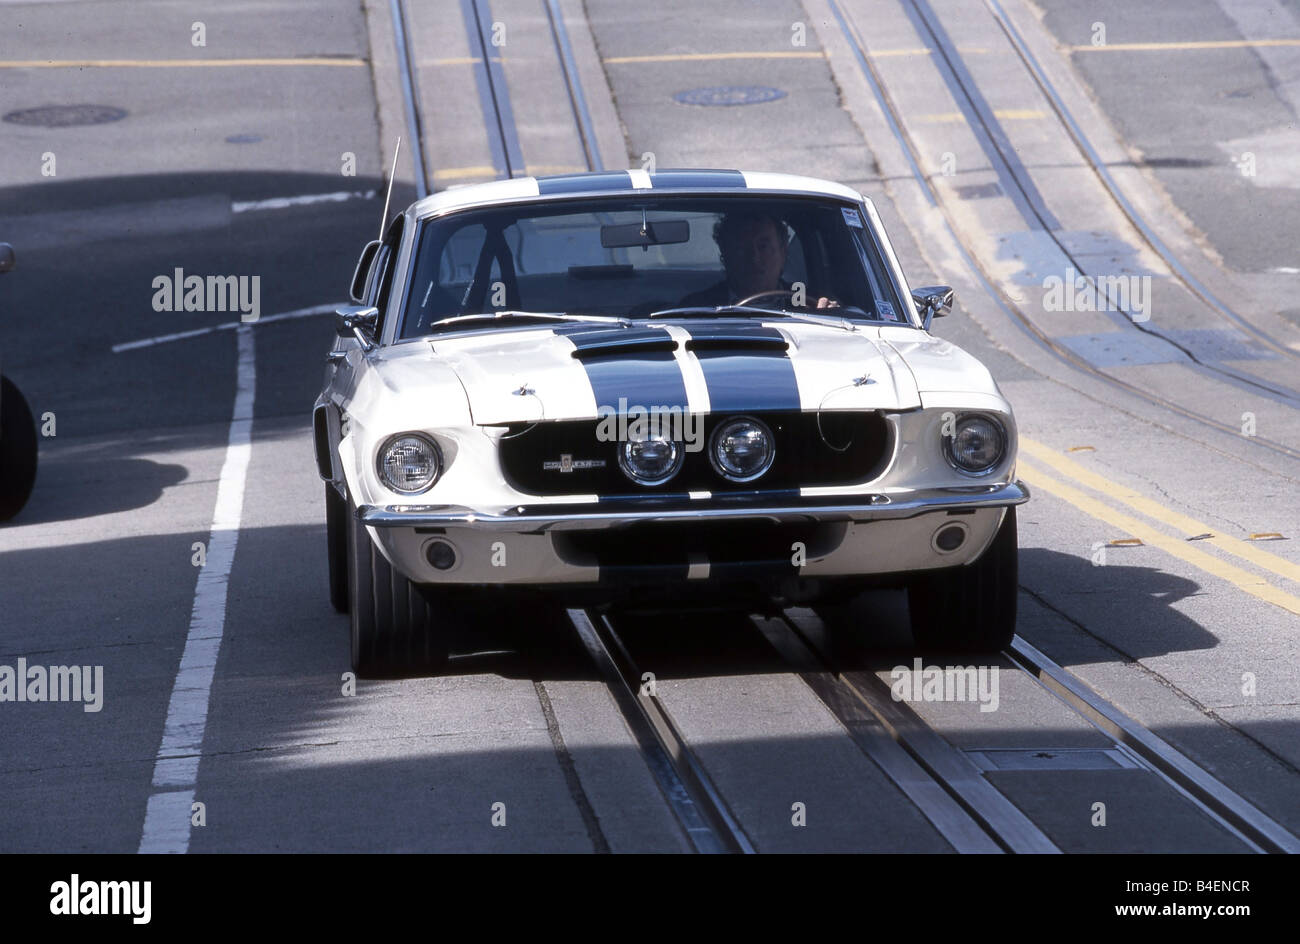 car ford mustang shelby gt model year 1967 coupé coupe stock